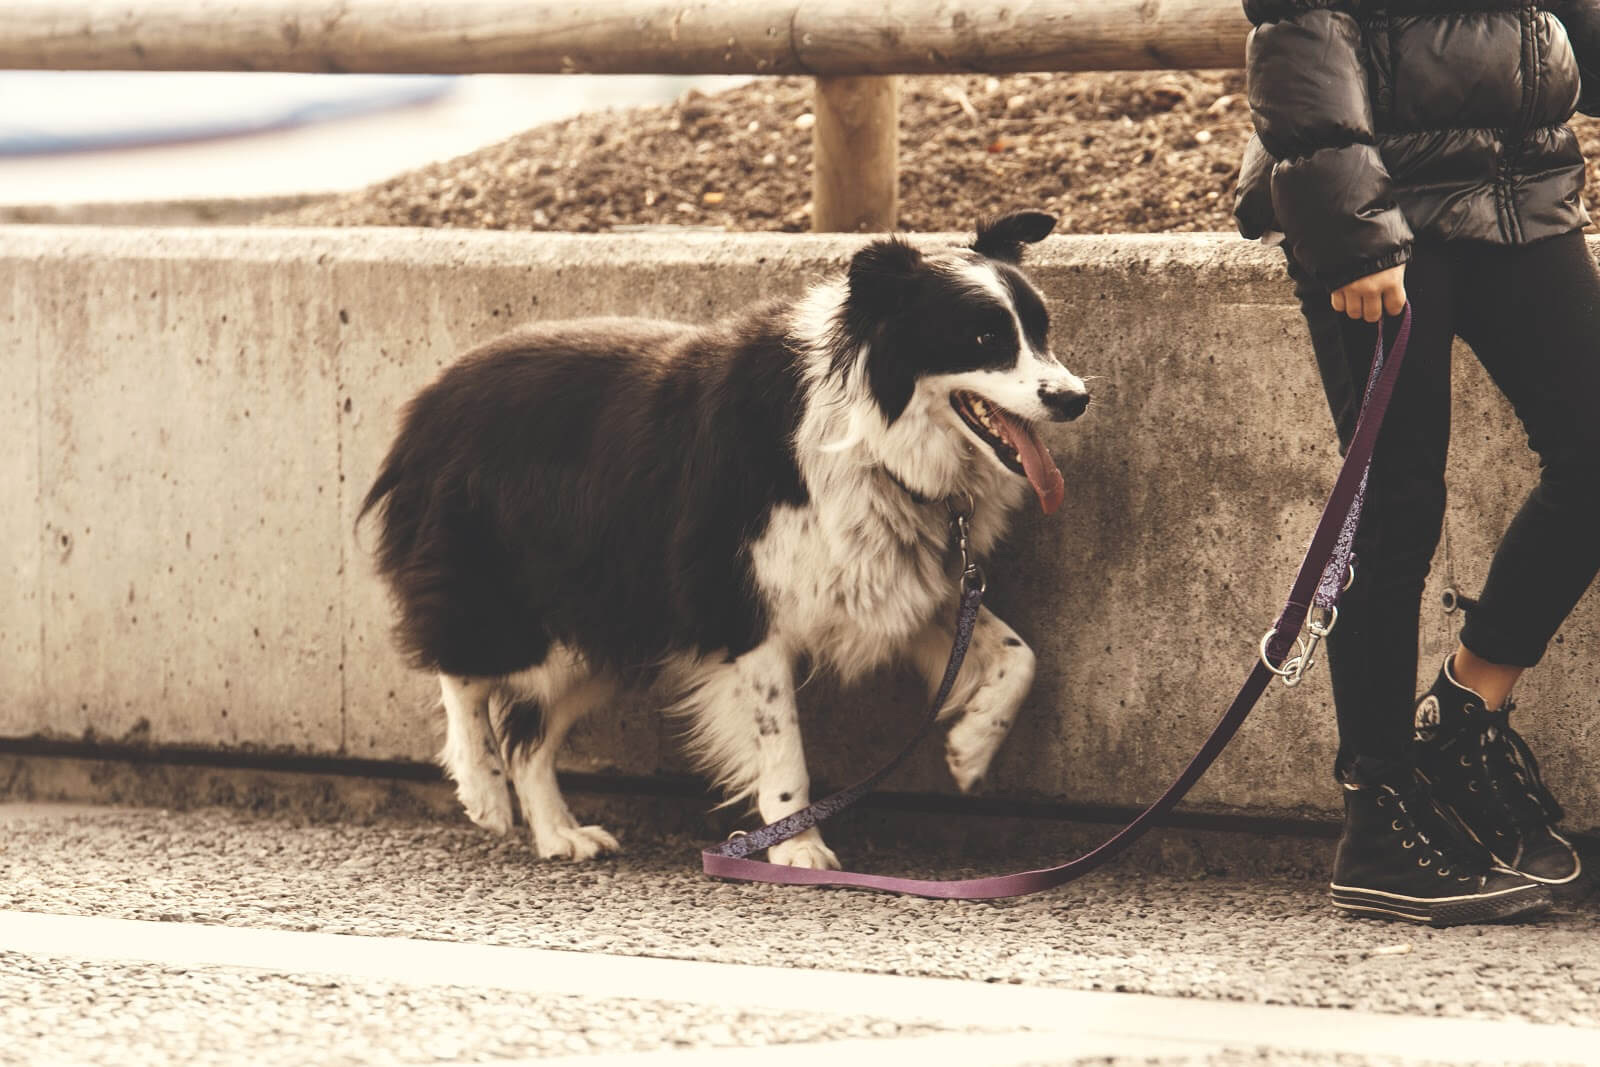 A person takes their adopted dog on a walk.